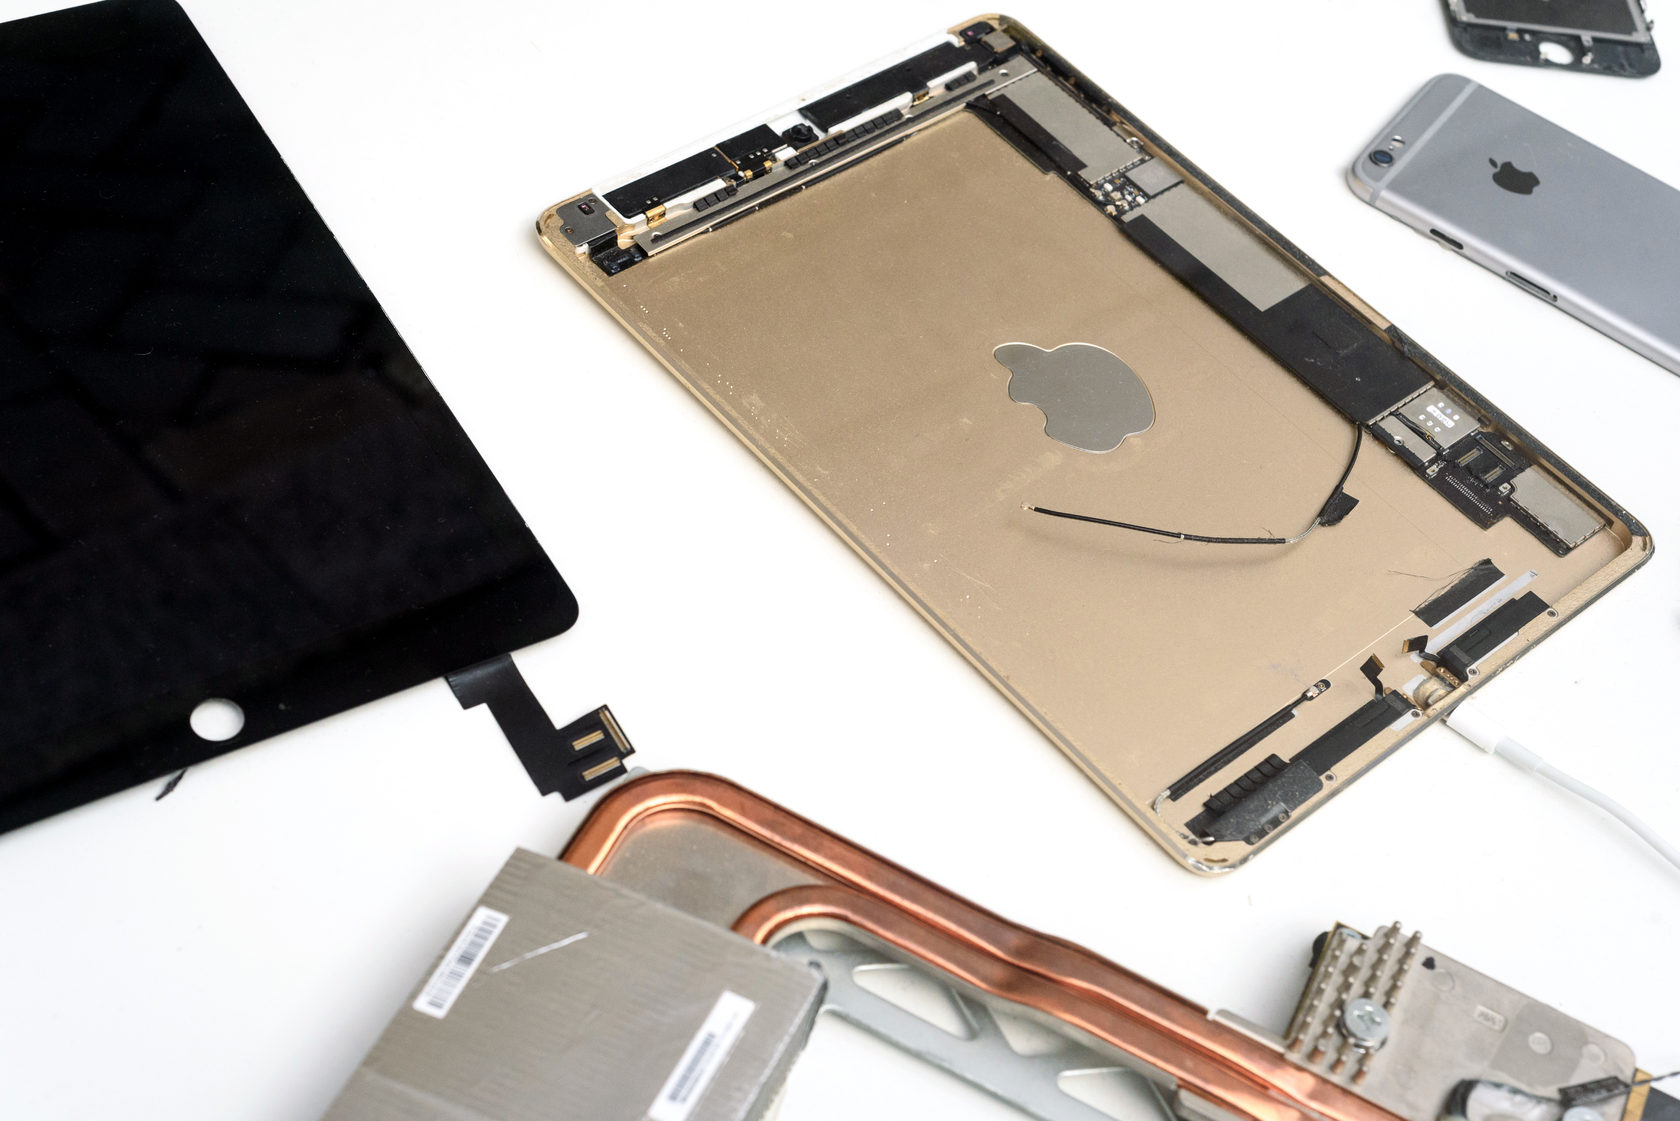 <strong>iPad repair with a lifetime warranty</strong> in Boca Raton